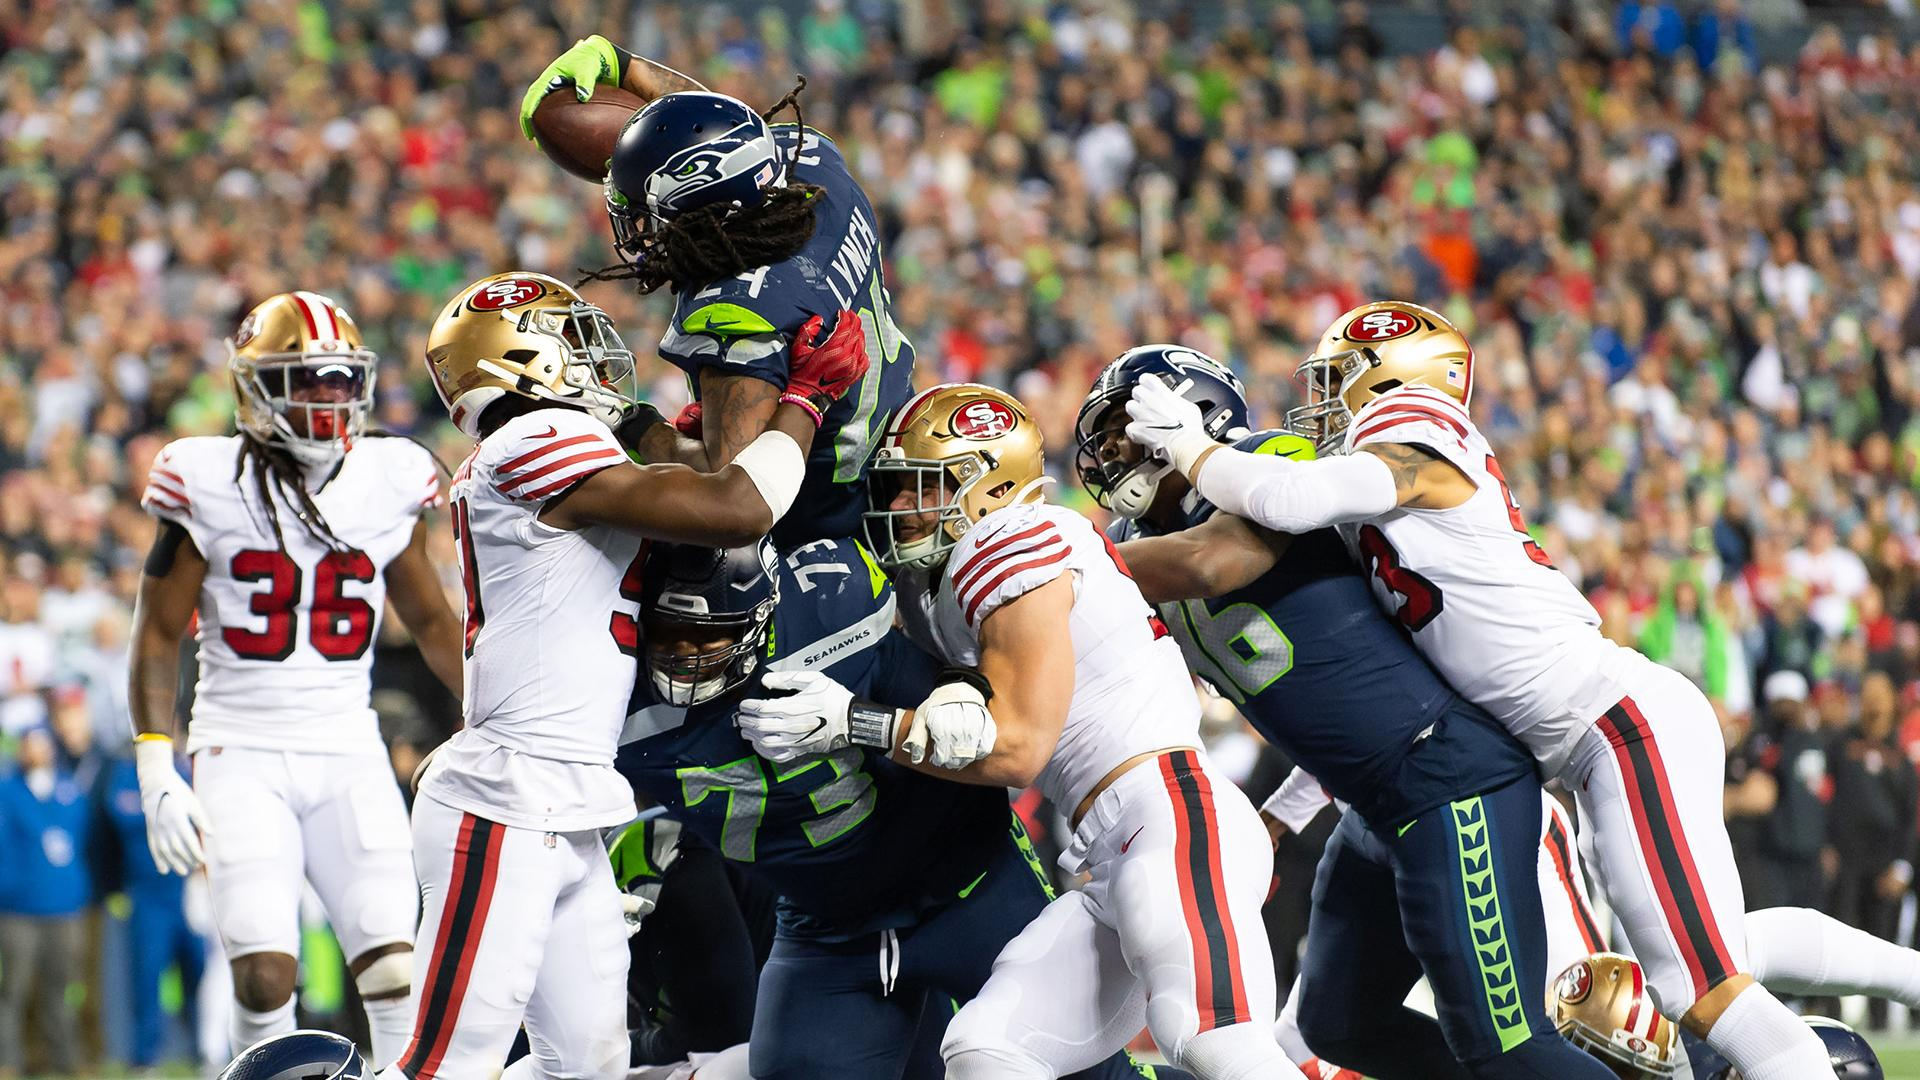 Watch Marshawn Lynch score TD vs. 49ers in first game back ...